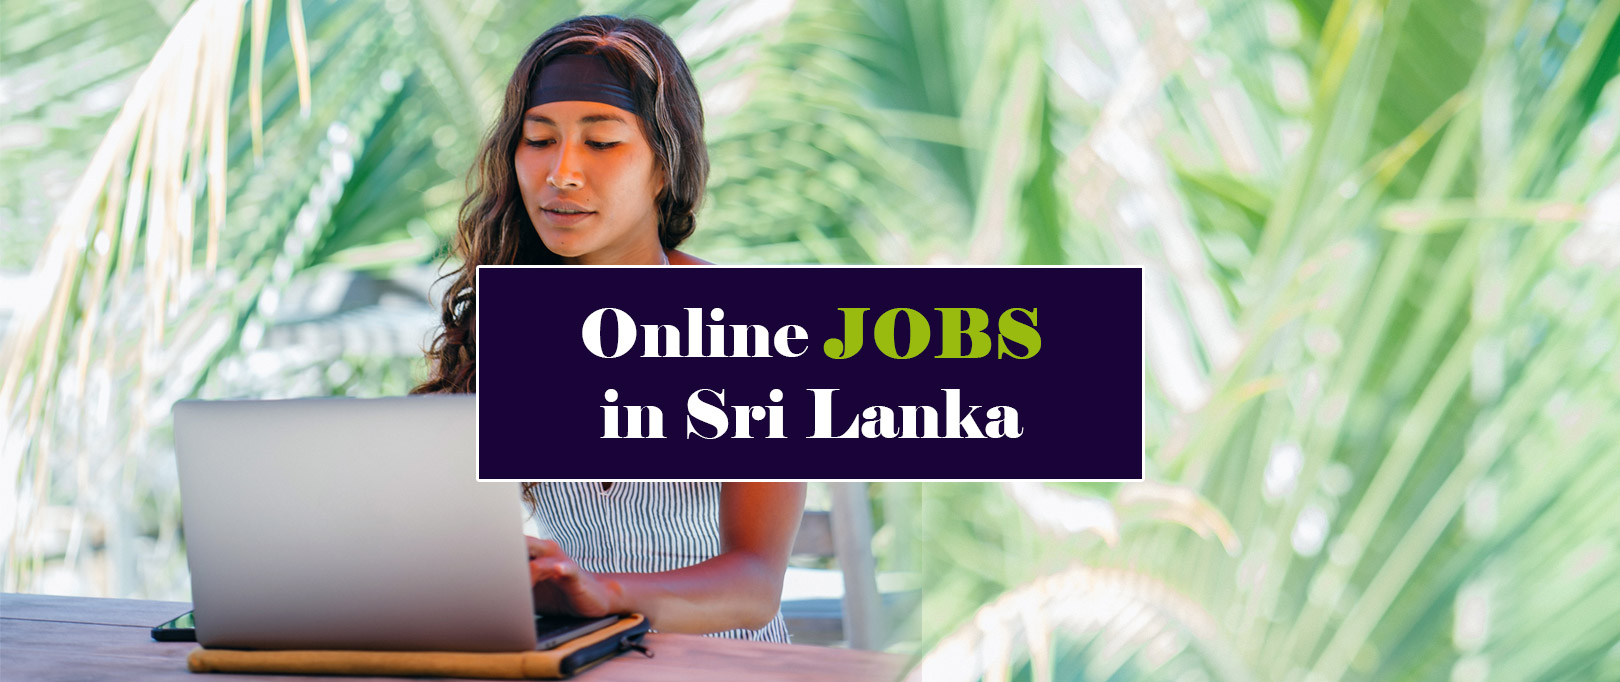 online-jobs-in-sri-lanka by prathilaba